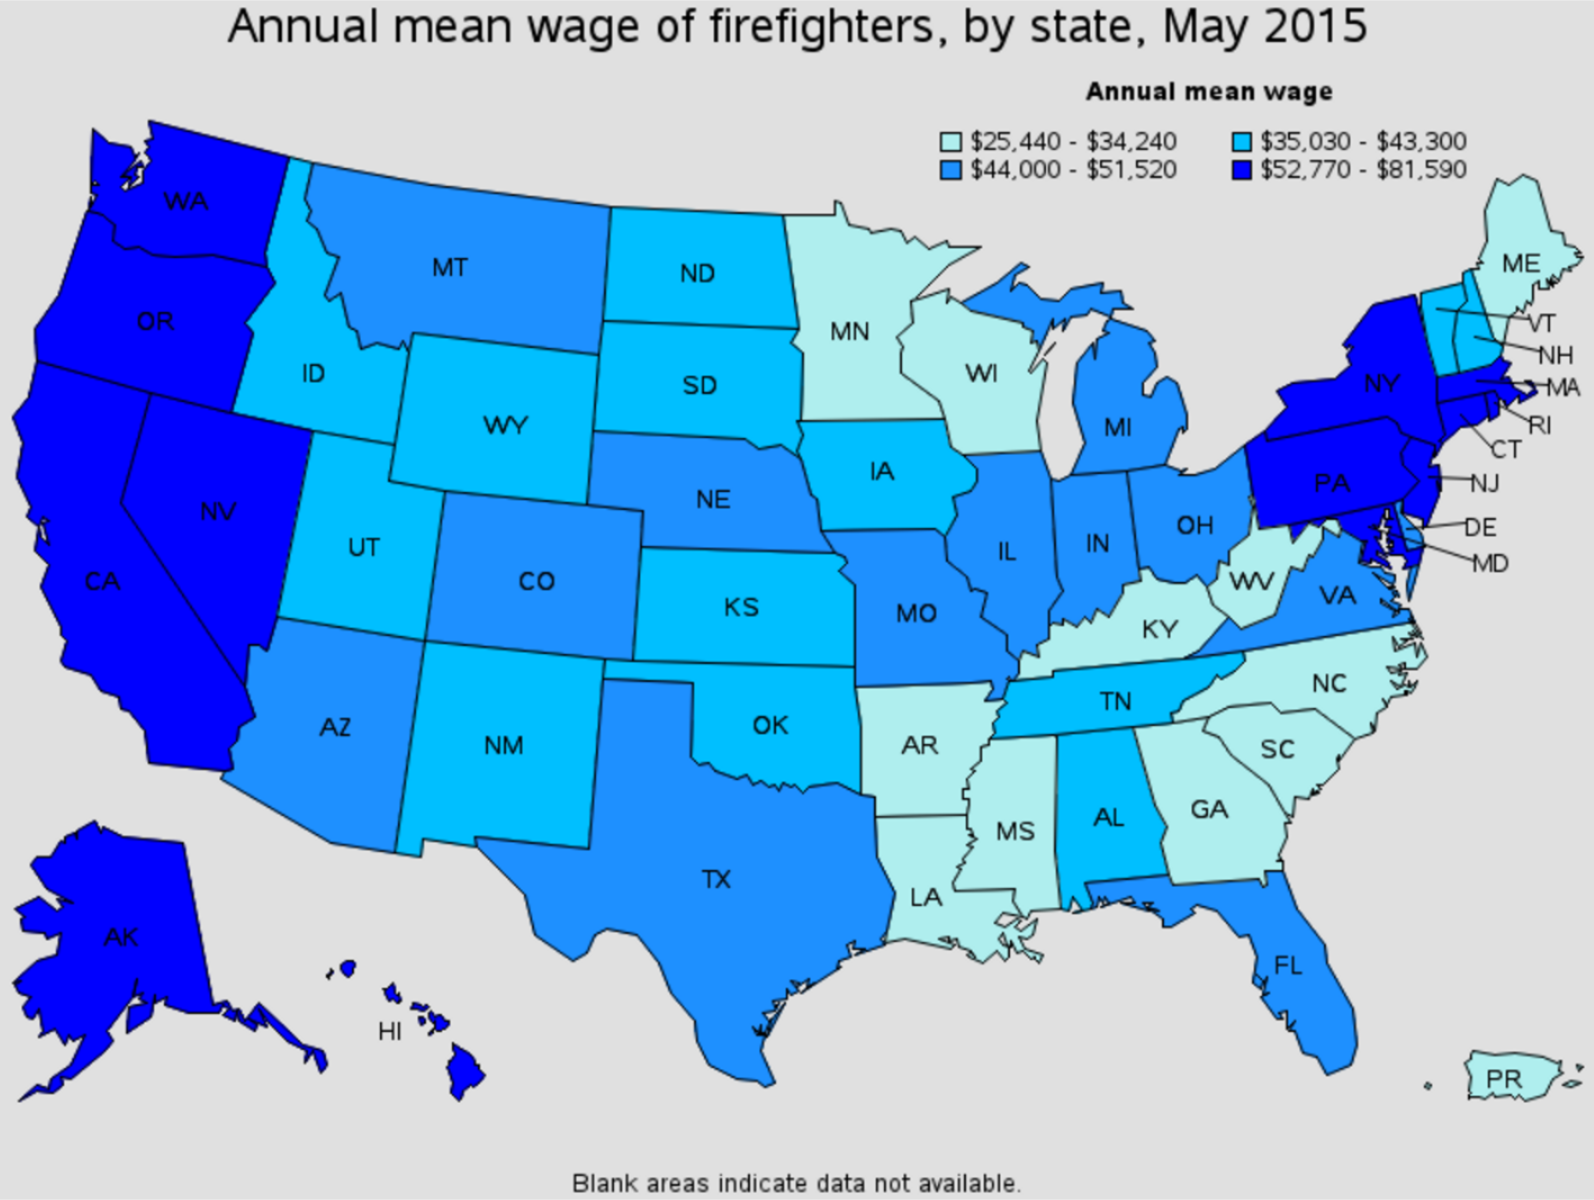 firefighter average salary by state Wimauma Florida